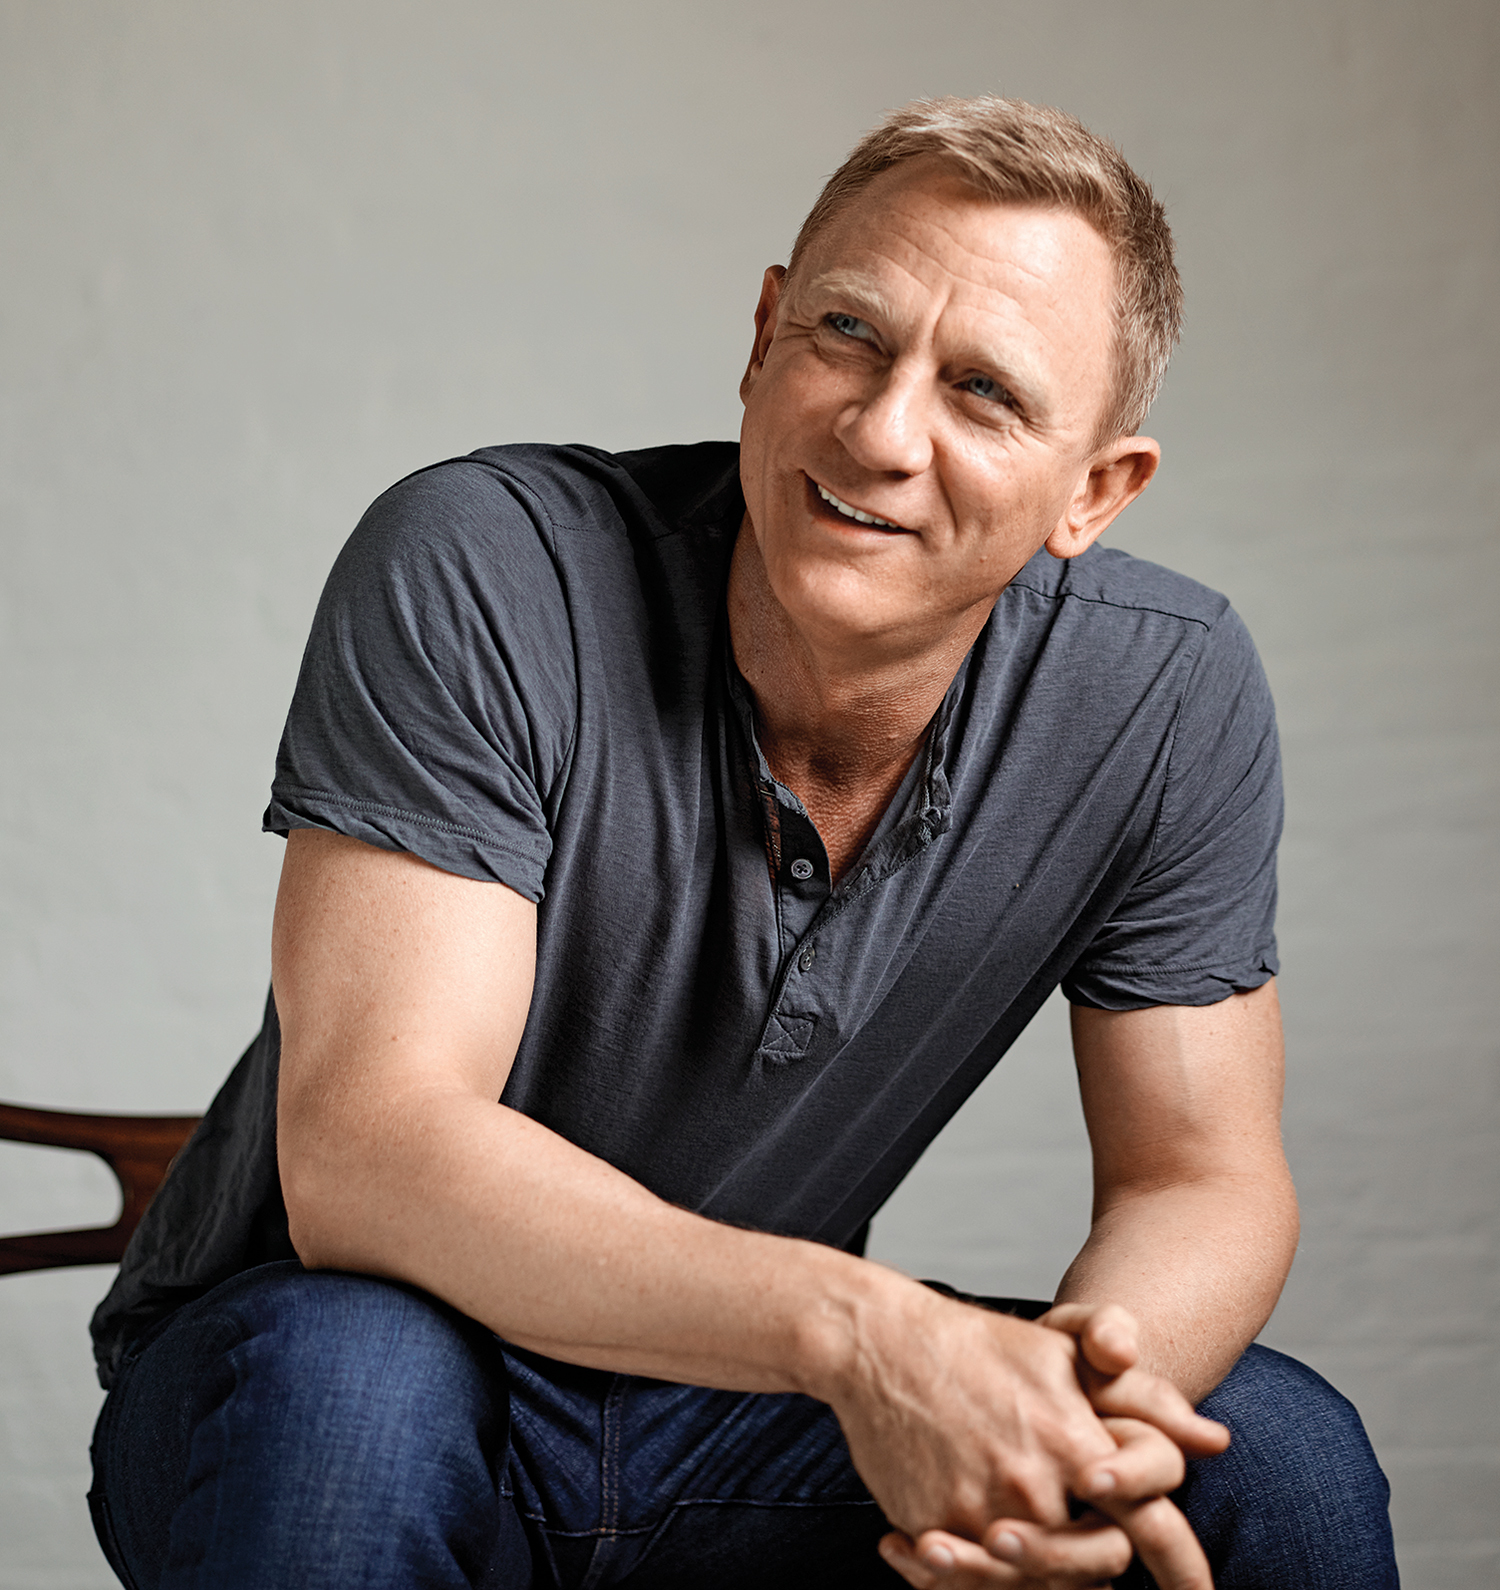 Daniel Craig on the new James Bond film and being a New Yorker